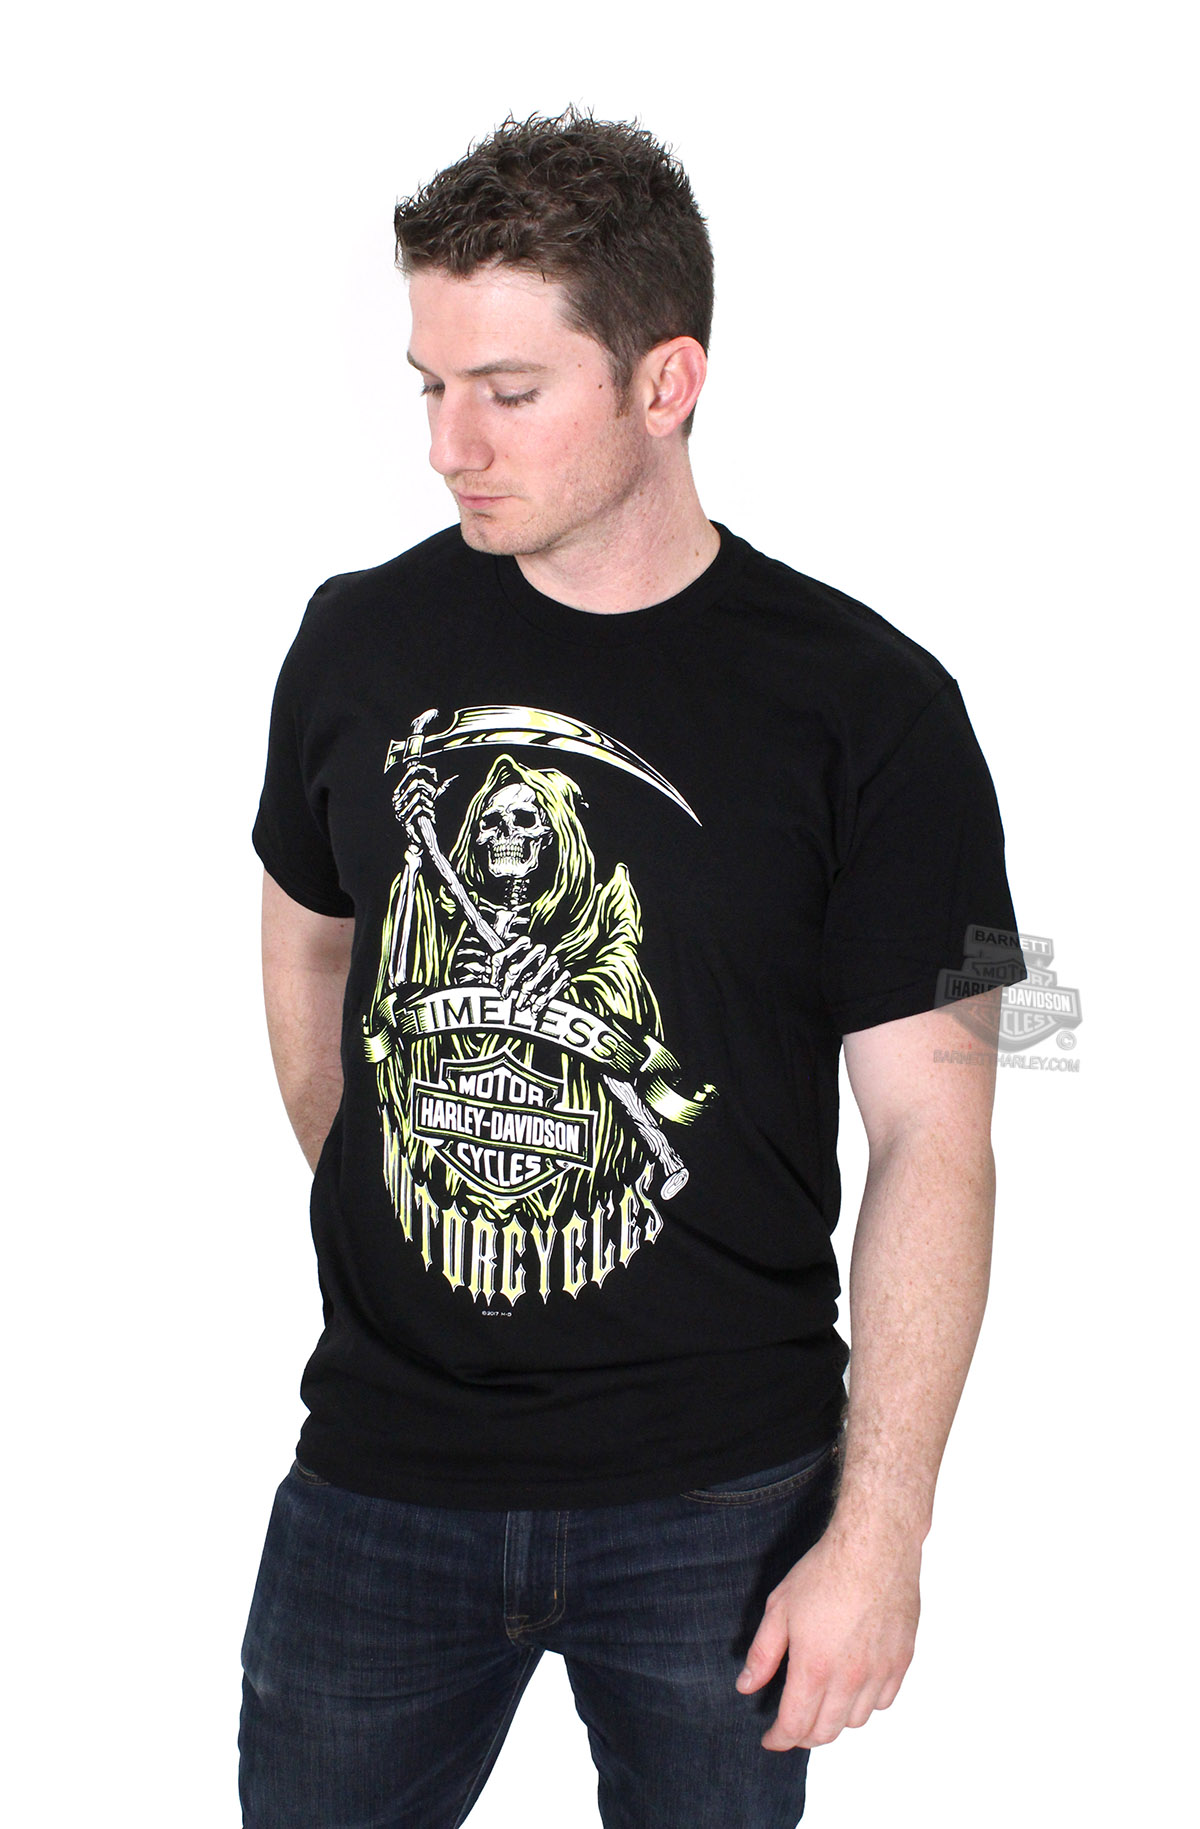 Harley-Davidson® Mens Reap Timeless Motorcycles with B&S Black Short Sleeve T-Shirt